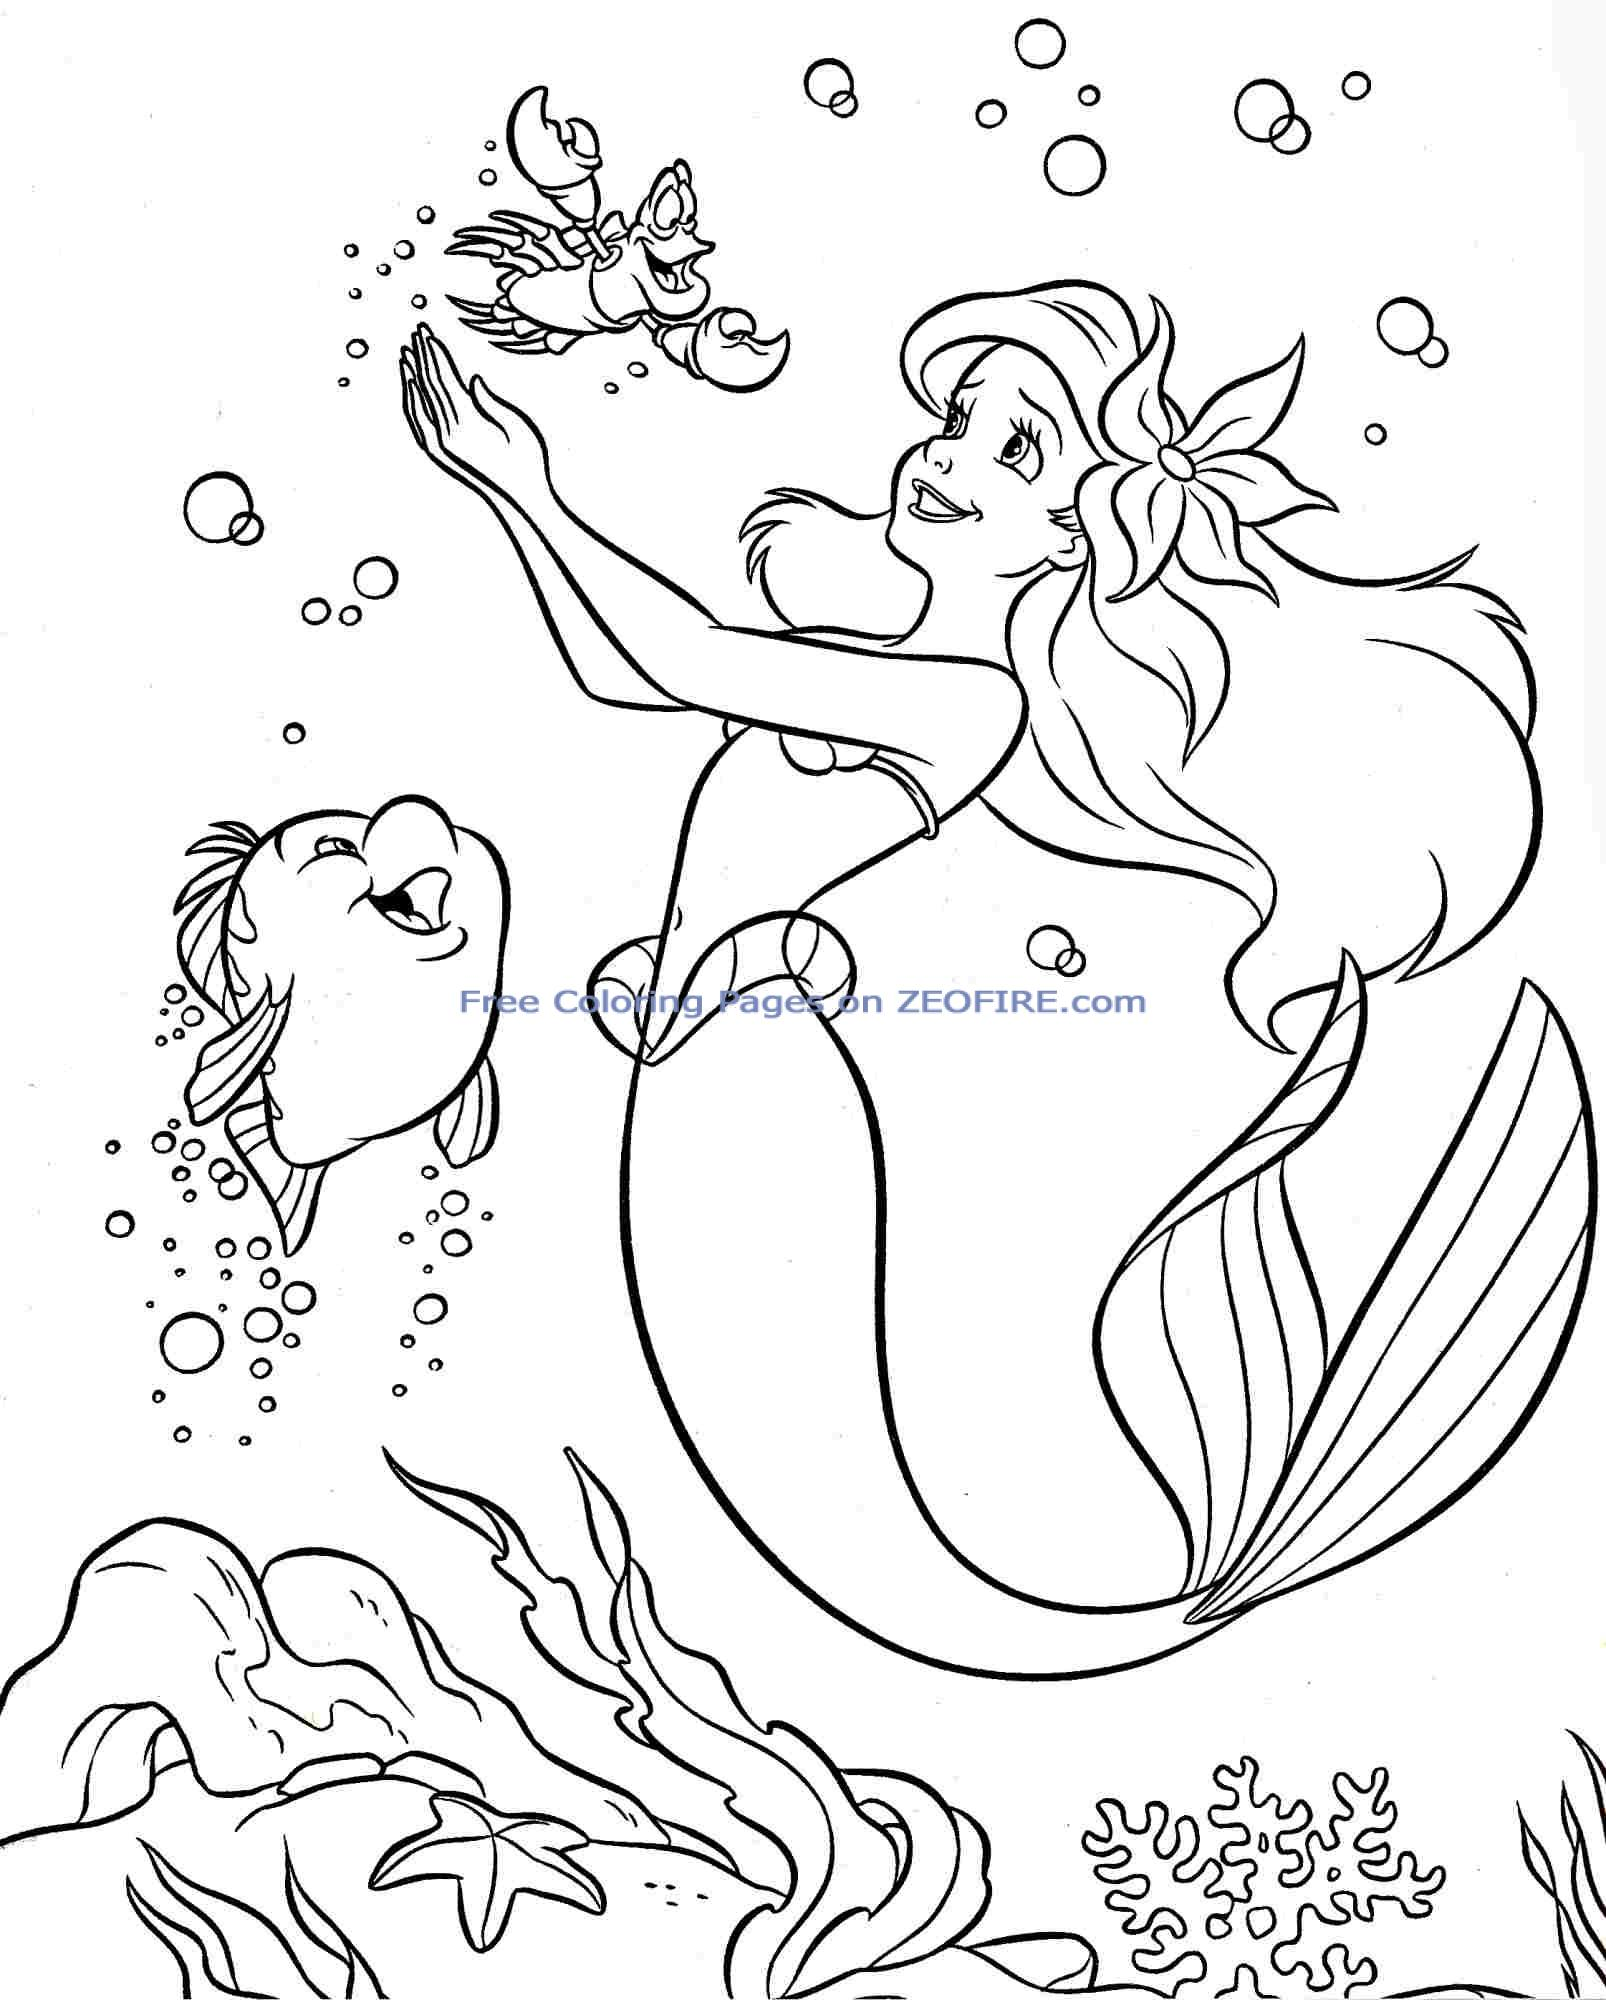 coloring mermaid pages the little mermaid coloring pages to download and print coloring pages mermaid